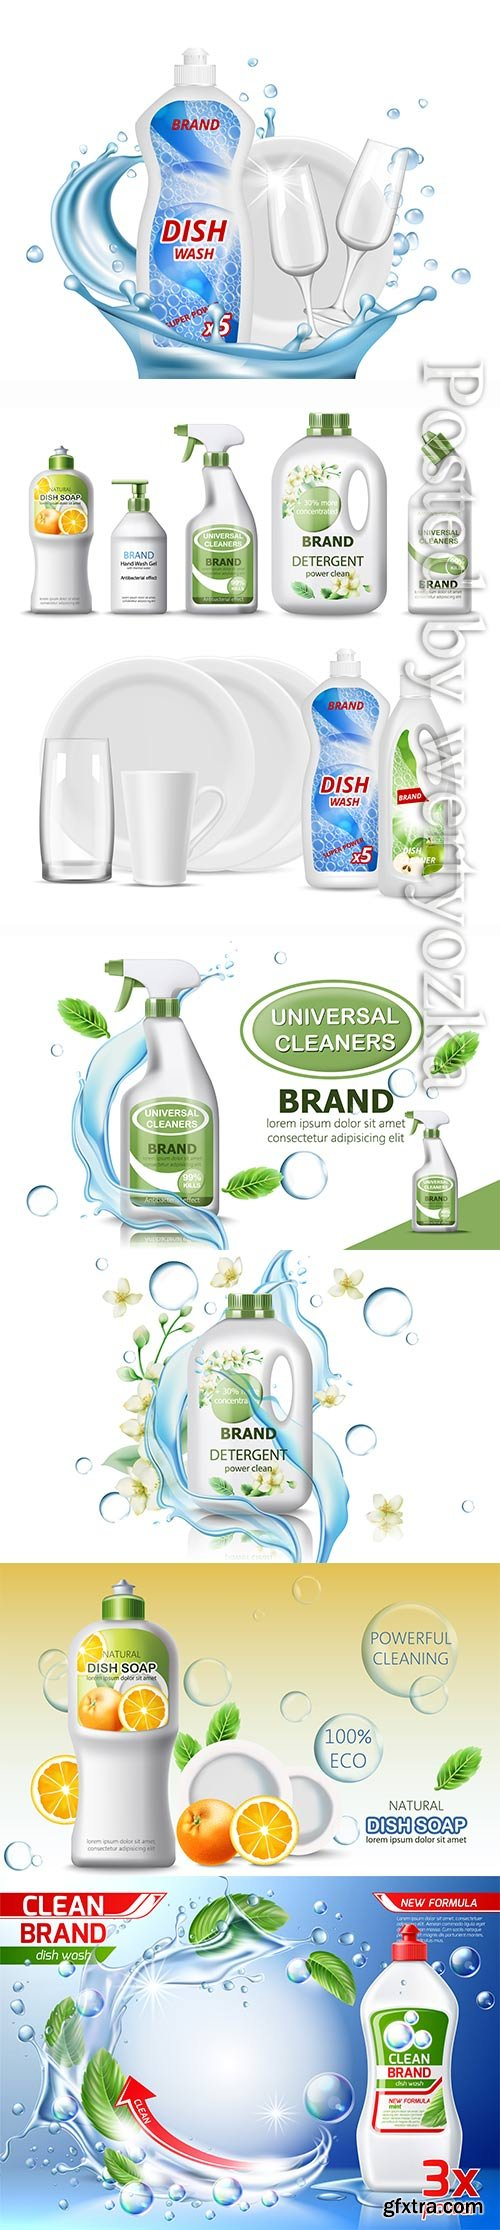 Set of dish soap, hand wash gel, universal cleaner and detergent